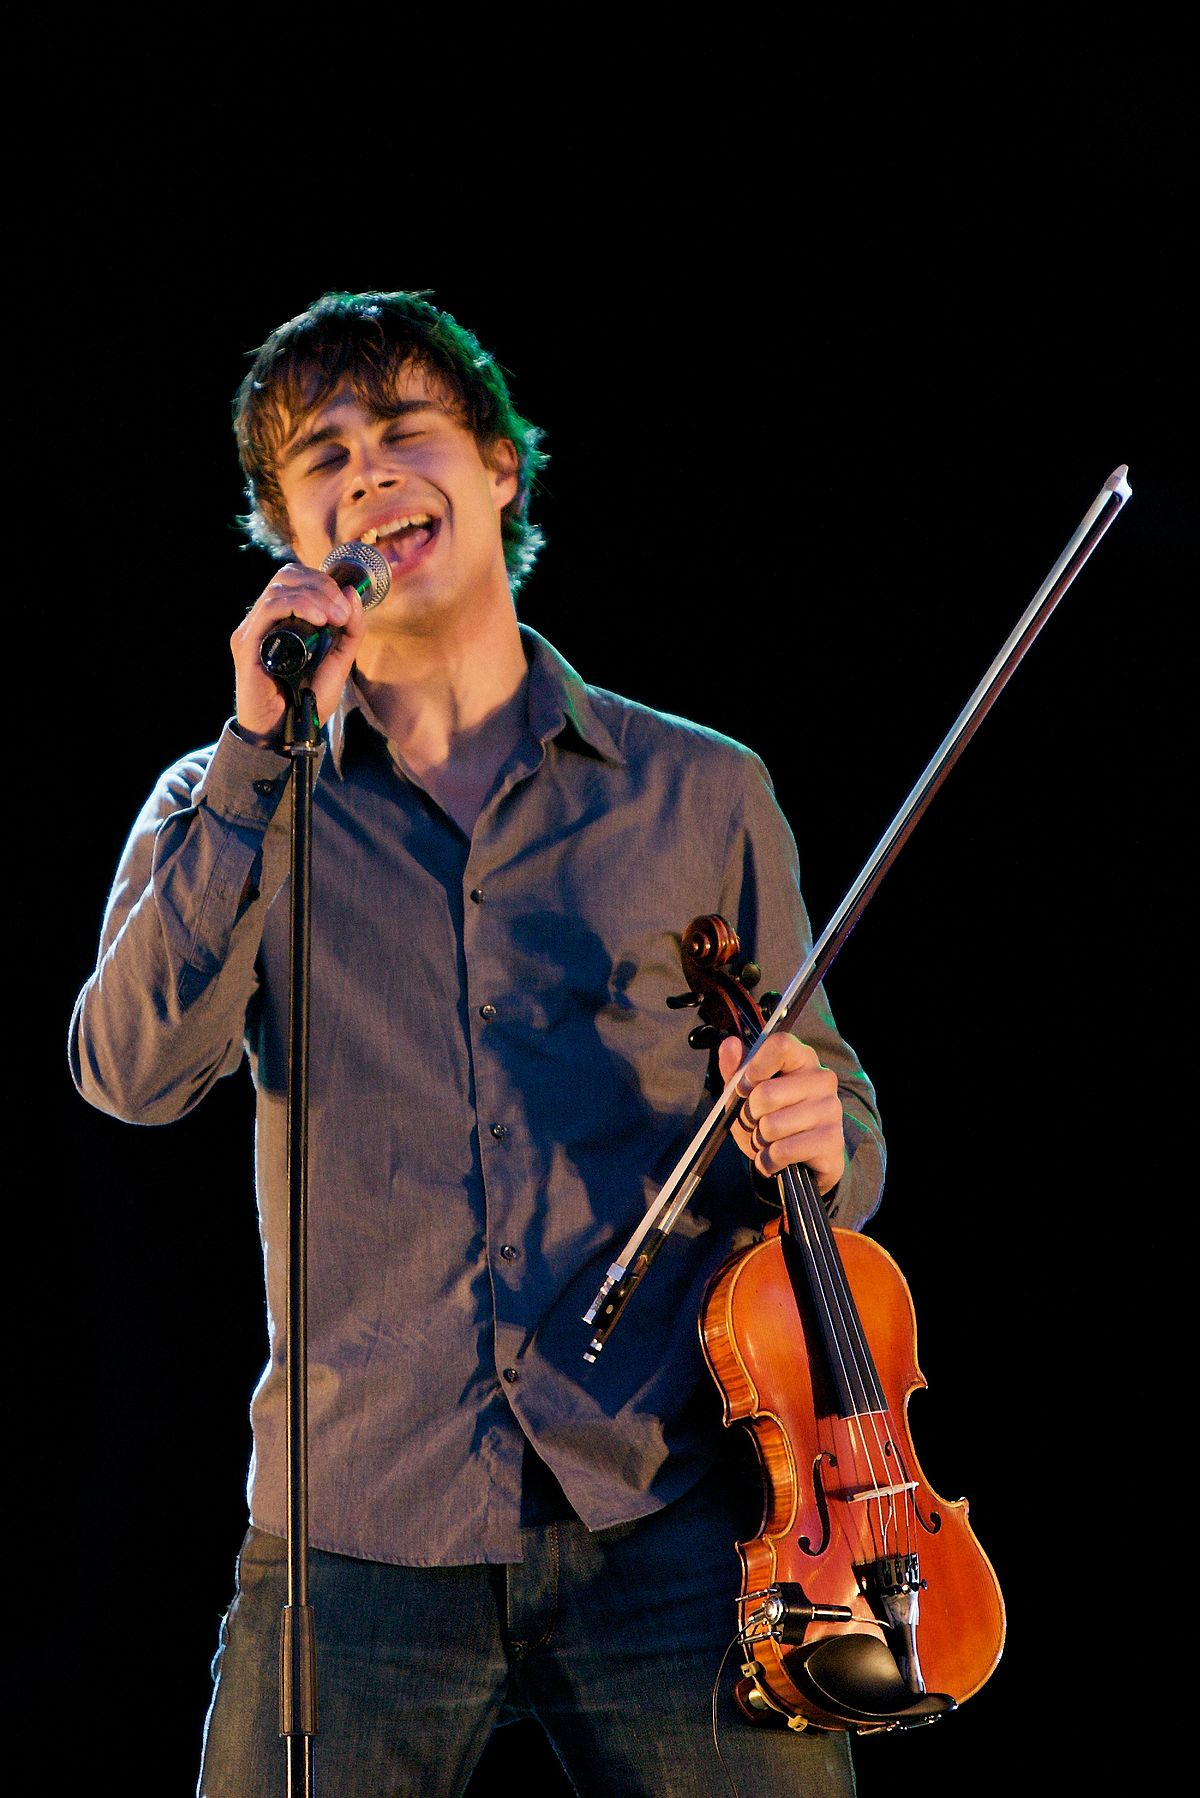 Run by a worldwide team of Alexander Rybak fans